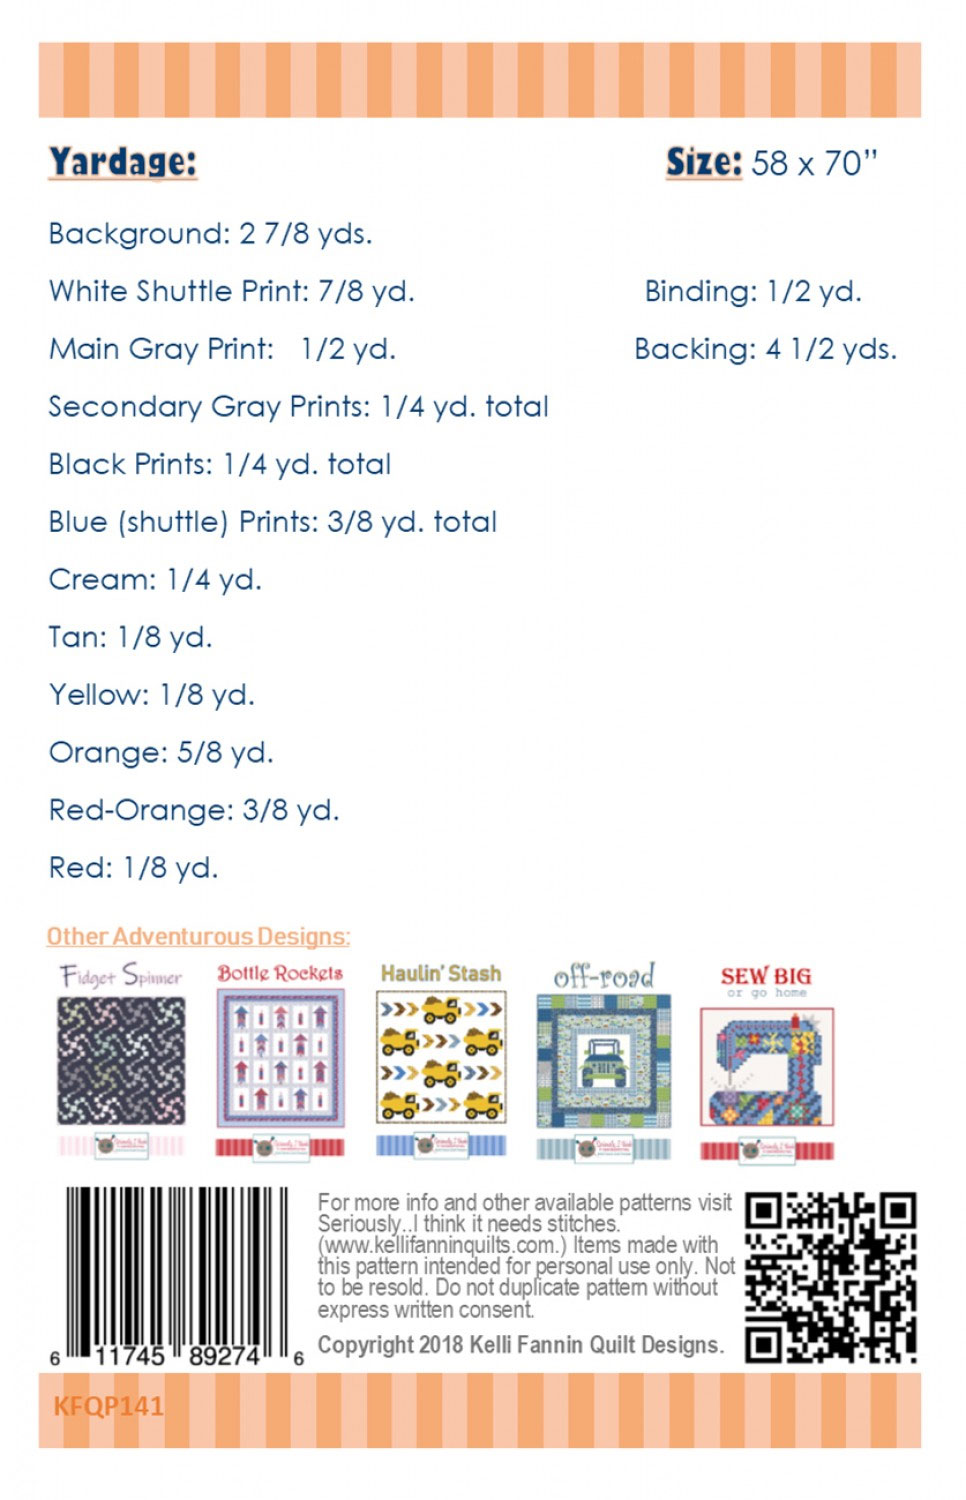 one-giant-stitch-quilt-sewing-pattern-Kelli-Fannin-Quilt-Designs-back